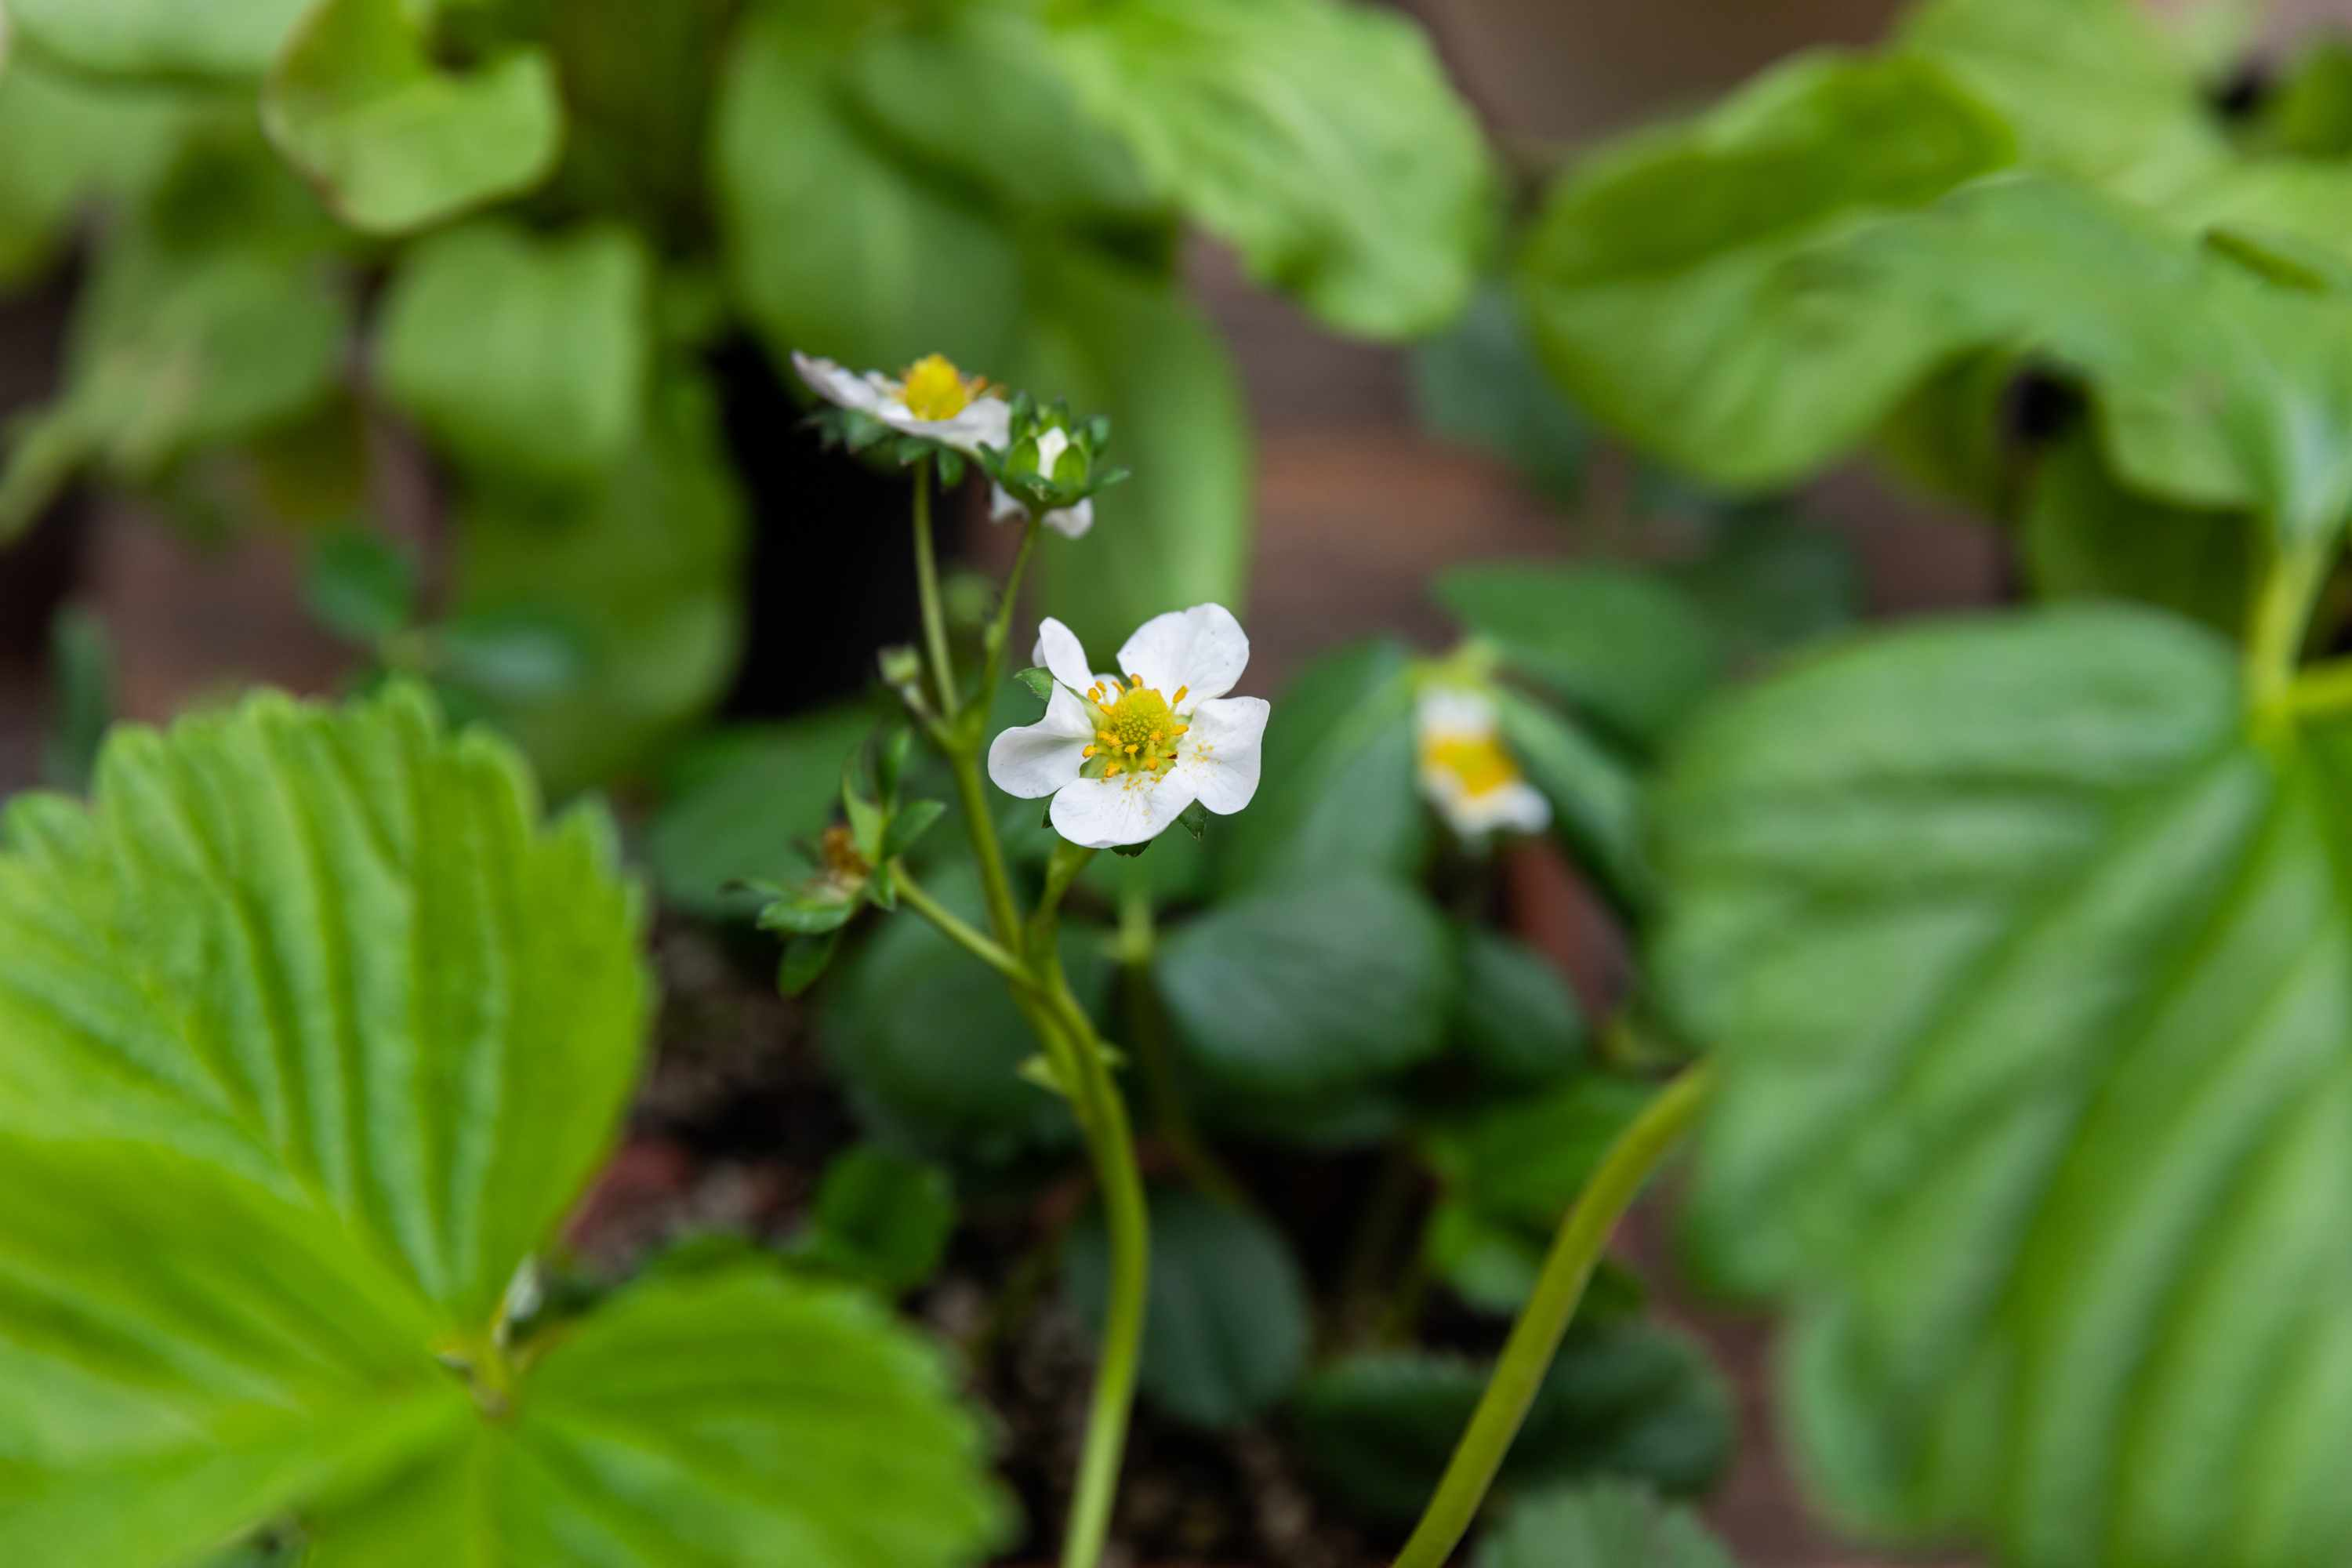 Small white flowers and buds in middle of strawberry plant